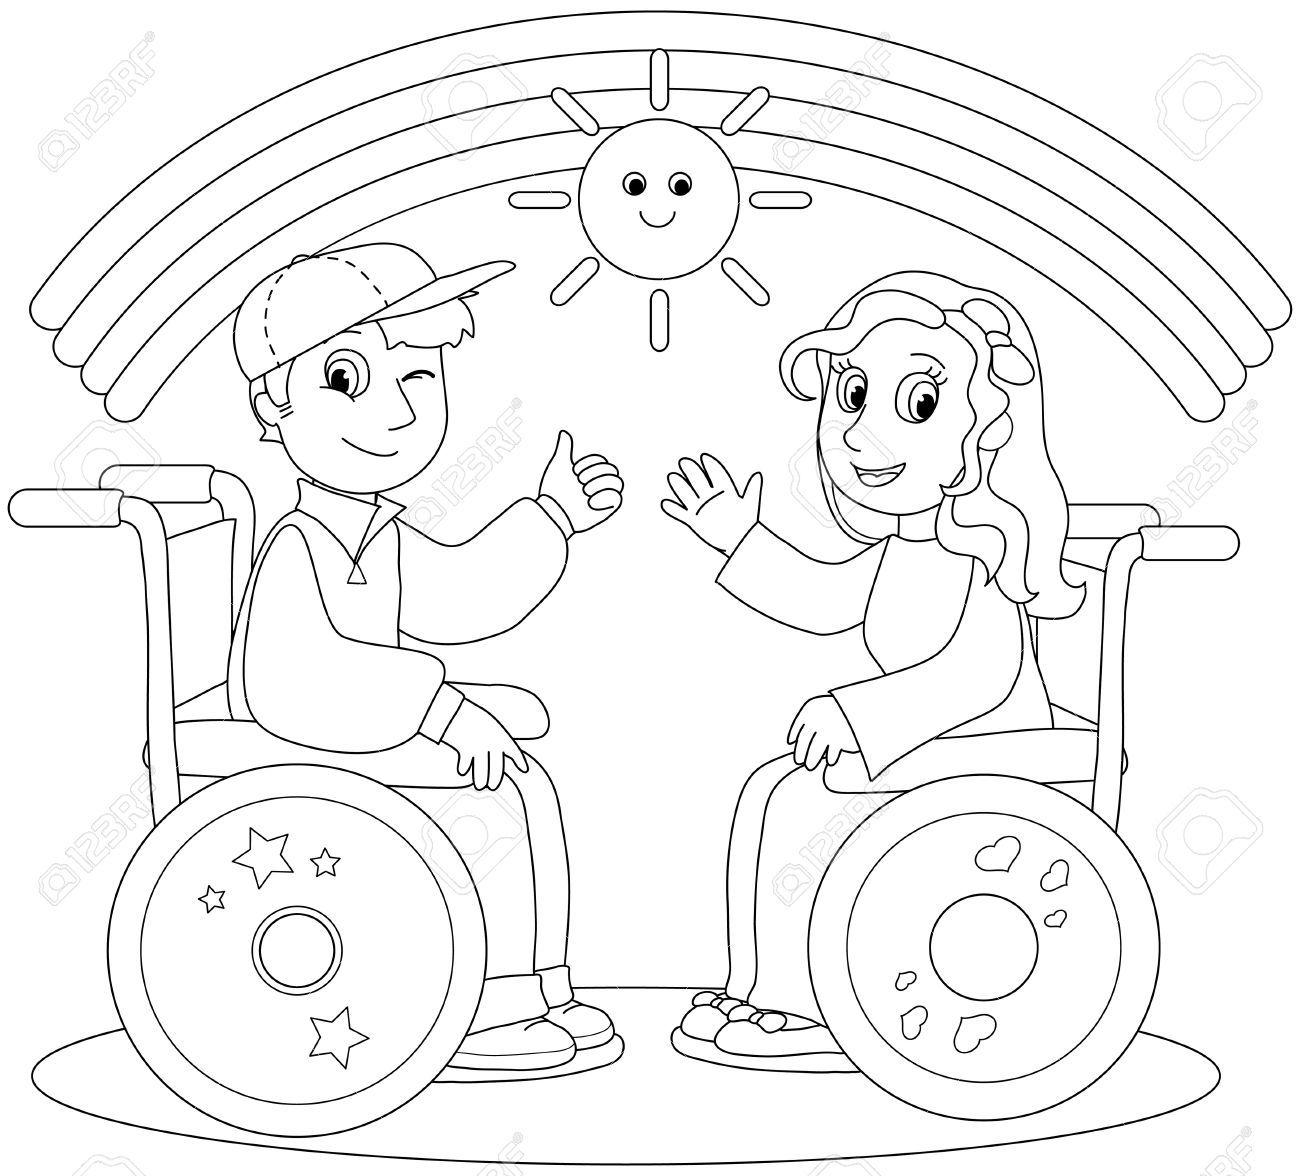 15173869-Coloriage-illustration-d-un-gar-on-et-une-fille-souriante ...